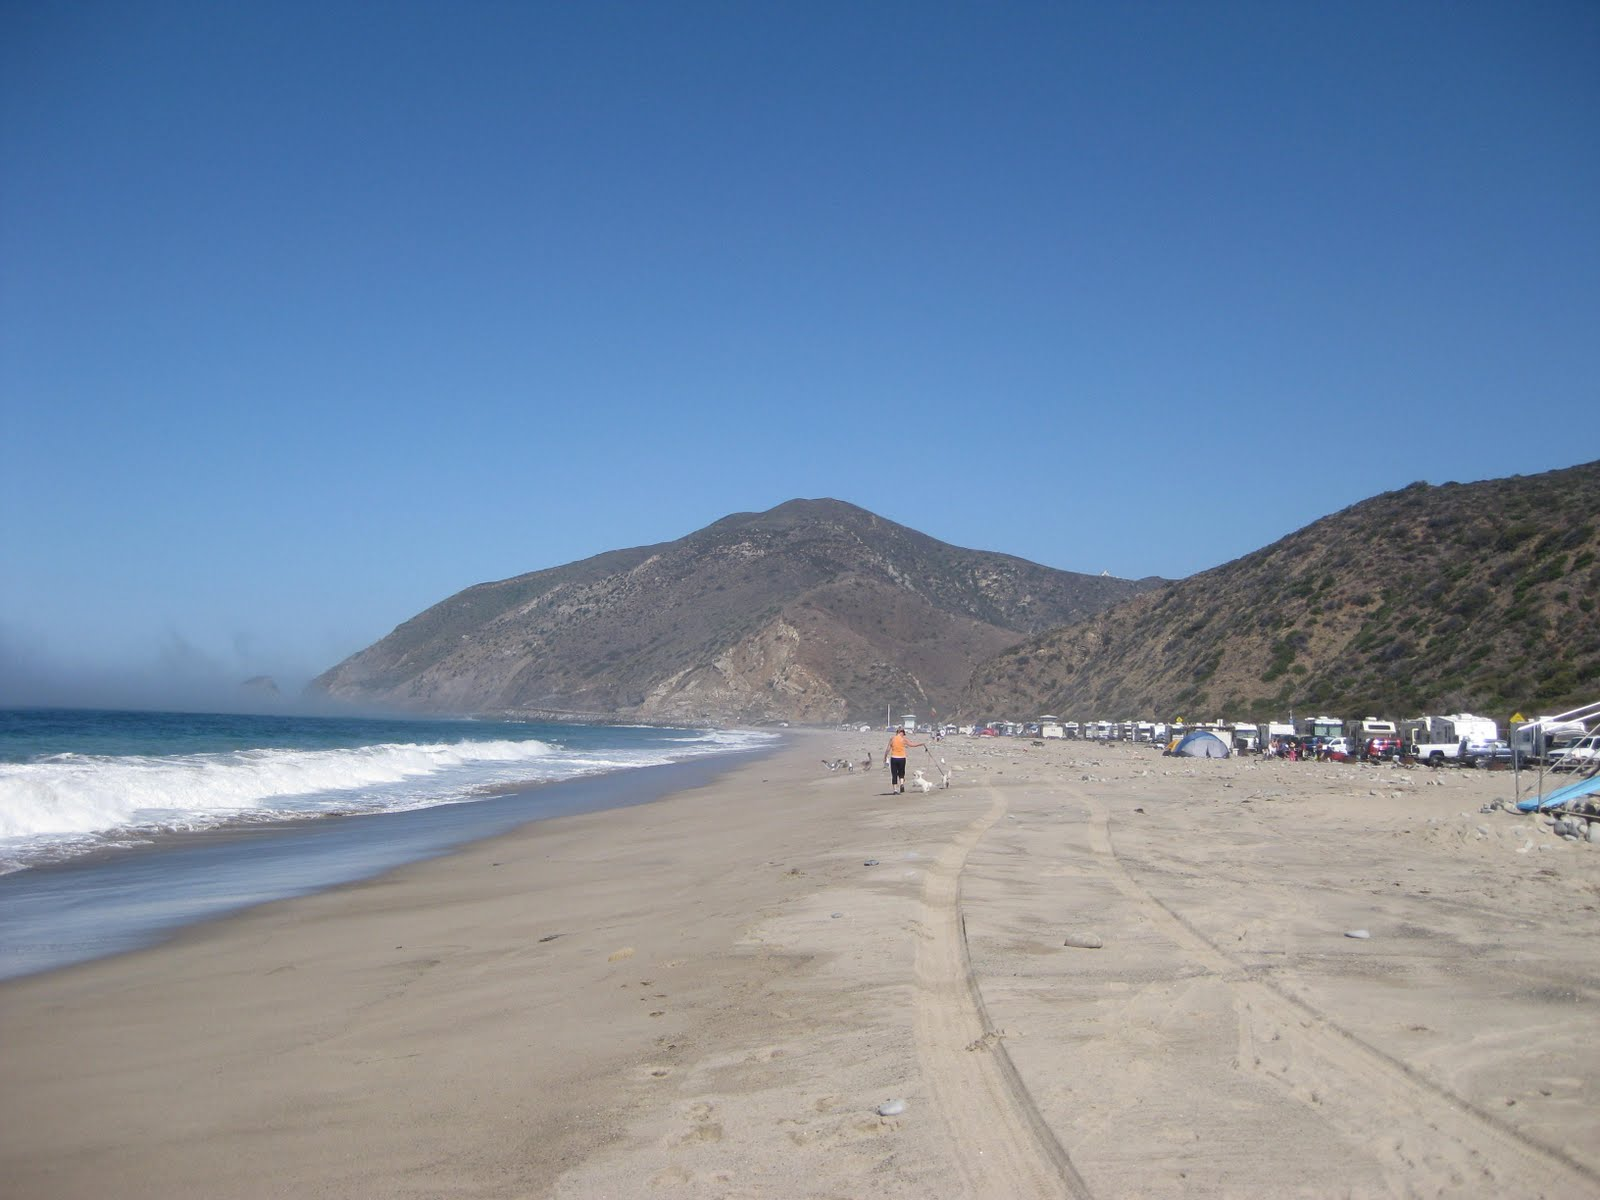 Point Mugu State Park Is Separated Into Two Diffe Campgrounds The Beachfront Thornhill Broome And Inland Sycamore Canyon